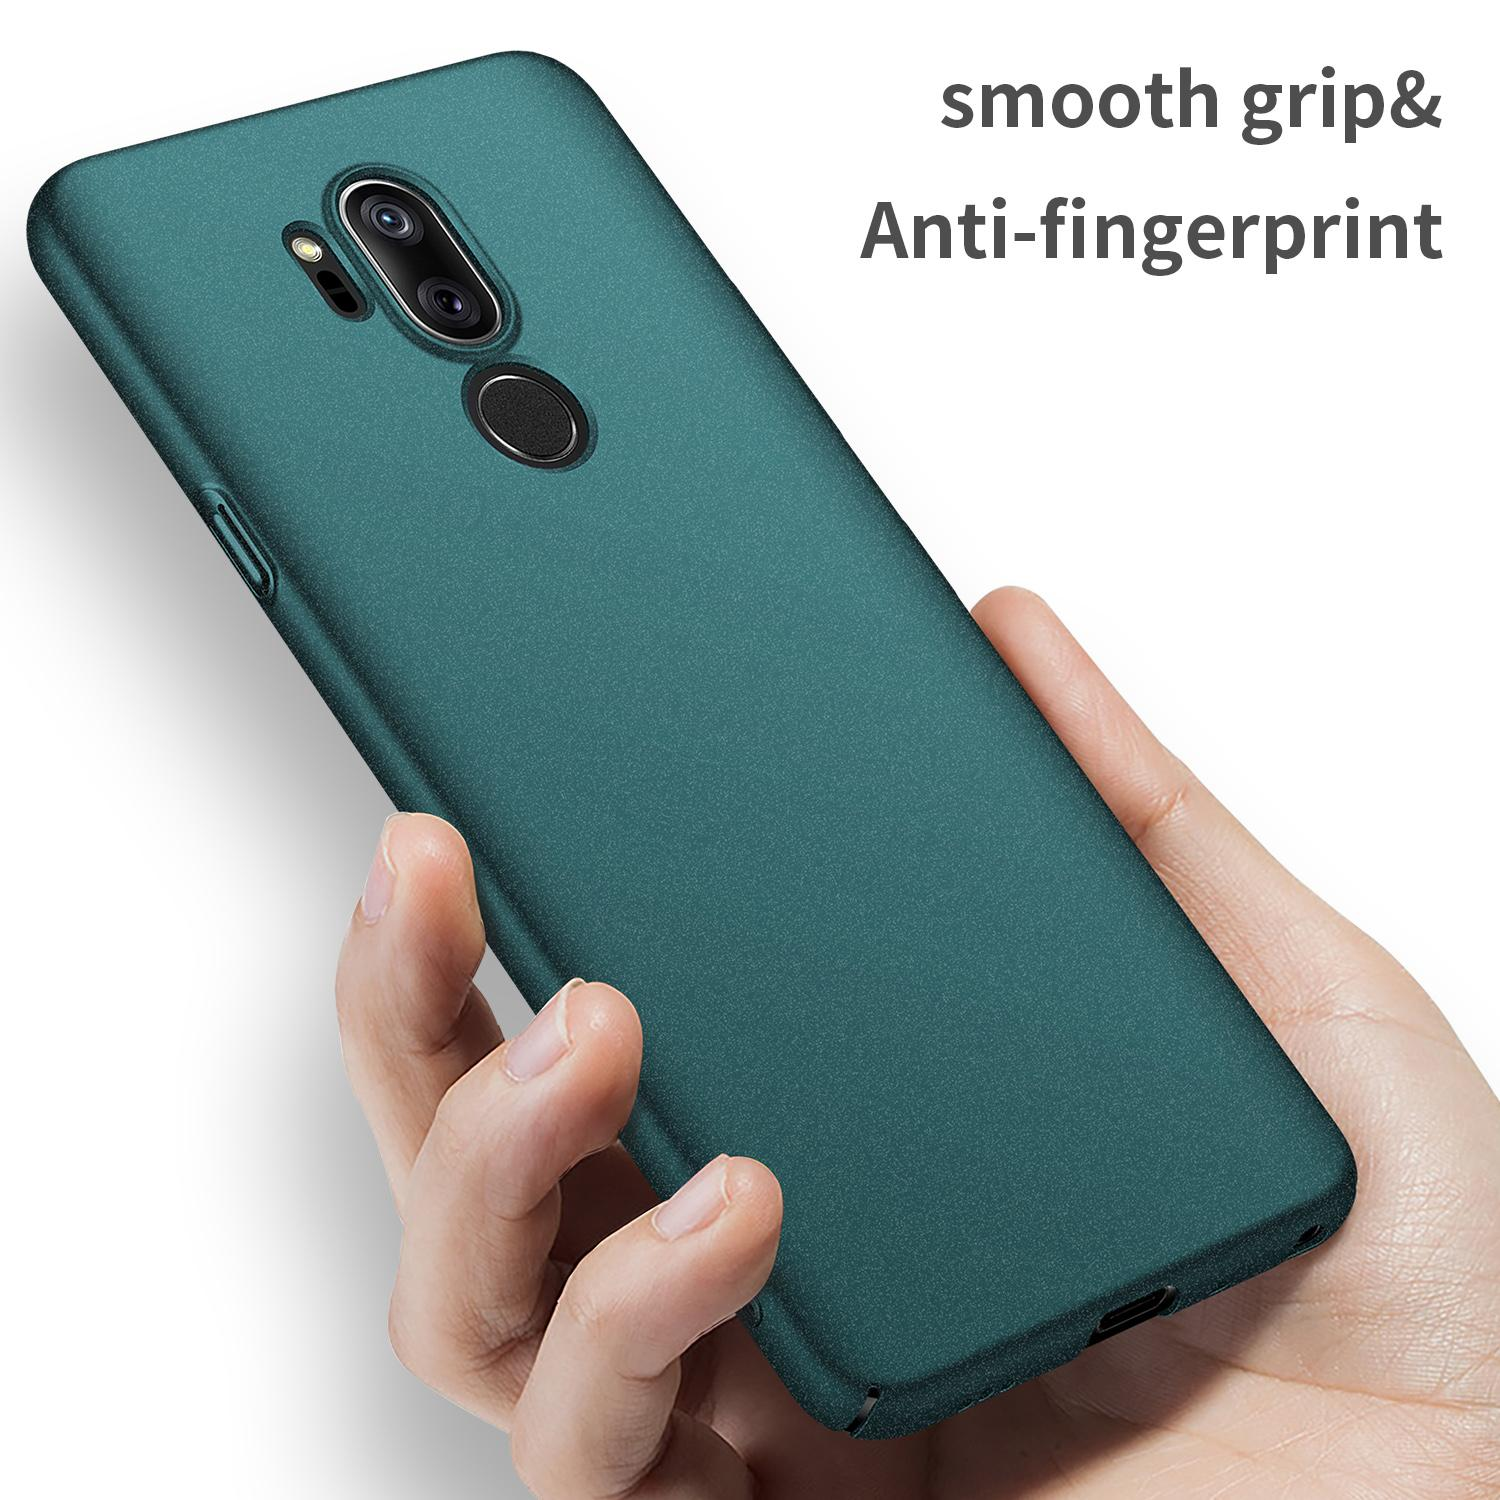 For LG G7 ThinQ Case Luxury High quality Hard PC Slim Coque Matte Skin Protective Back cover cases for LG G7 ThinQ phone shell